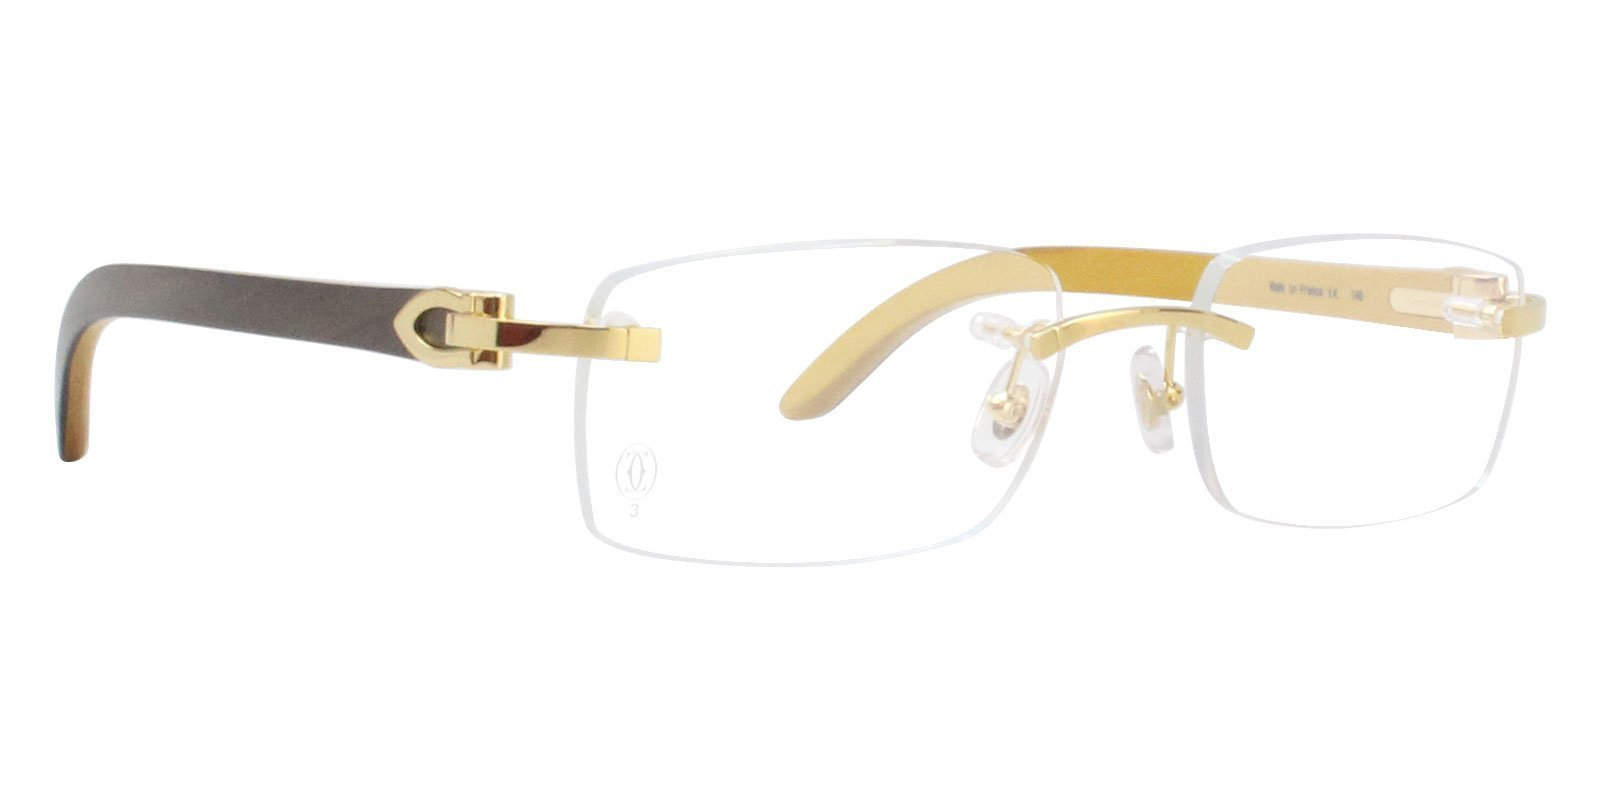 Cartier - C Decor Brown Gold Rimless Unisex Eyeglasses - 53mm-Eyeglasses-Designer Eyes